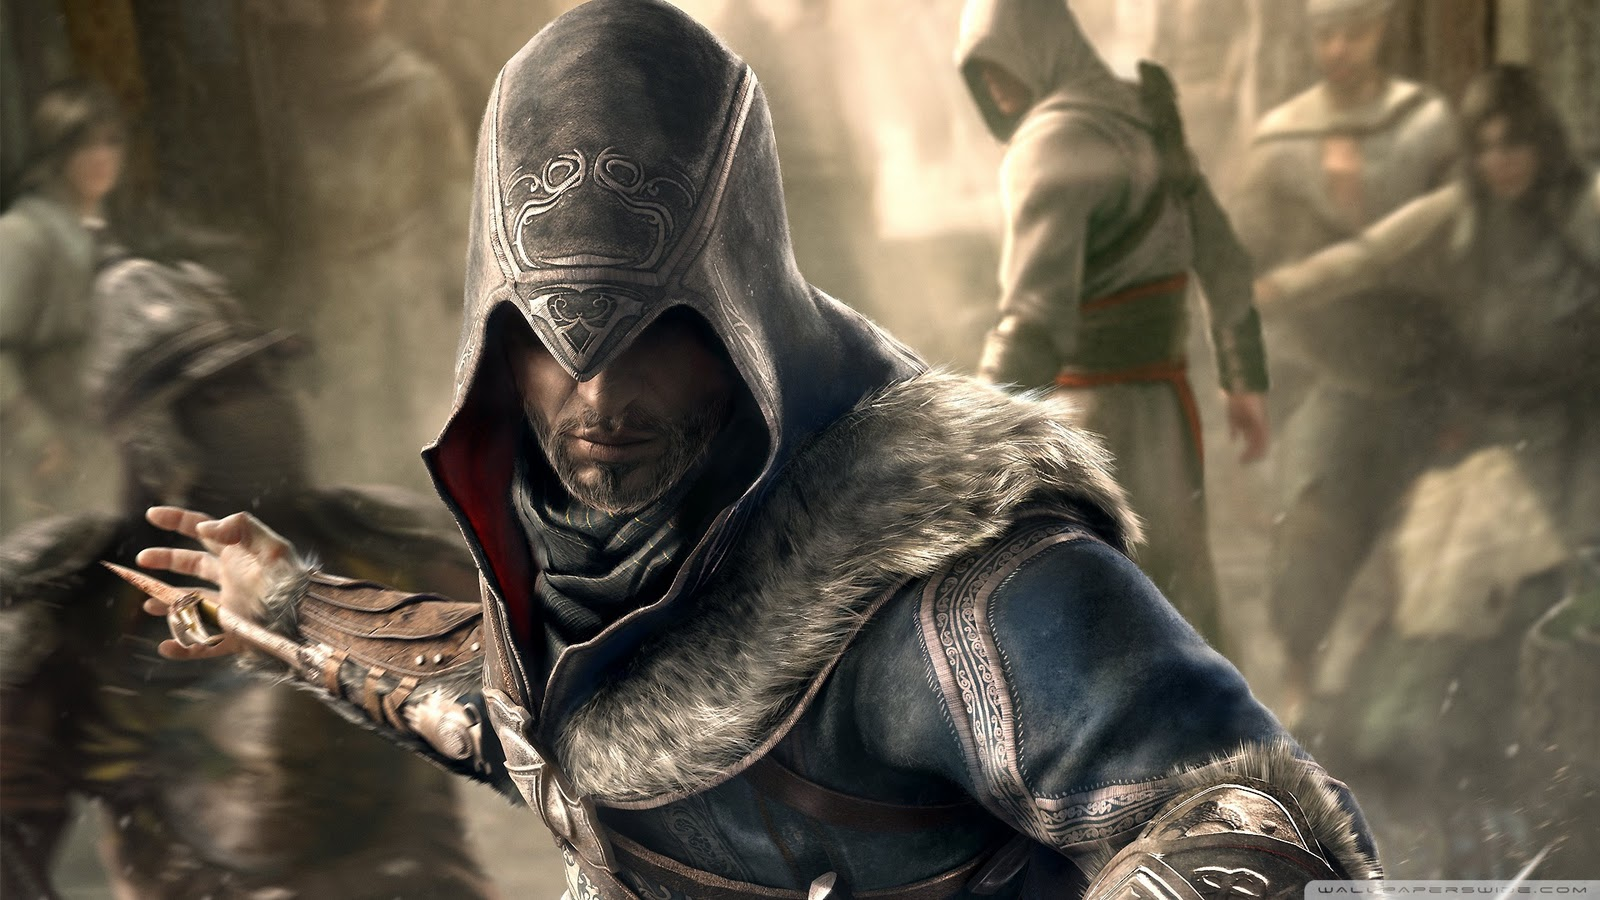 http://1.bp.blogspot.com/-hT6MadtUN50/TrX8ybsPKnI/AAAAAAAAAVk/BjTAtLM8sbM/s1600/assassins_creed_revelations_master_assassins_2-wallpaper-1920x1080.jpg